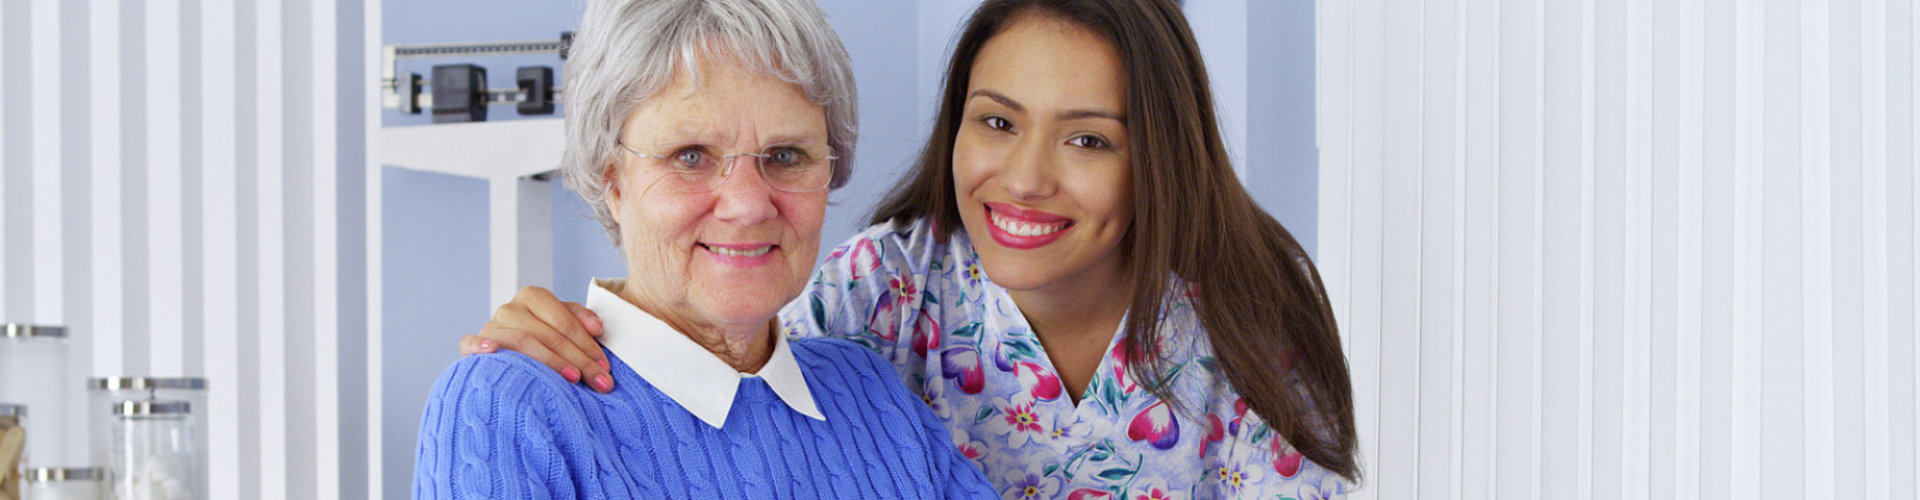 caregiver and senior woman are smiling at the hospital